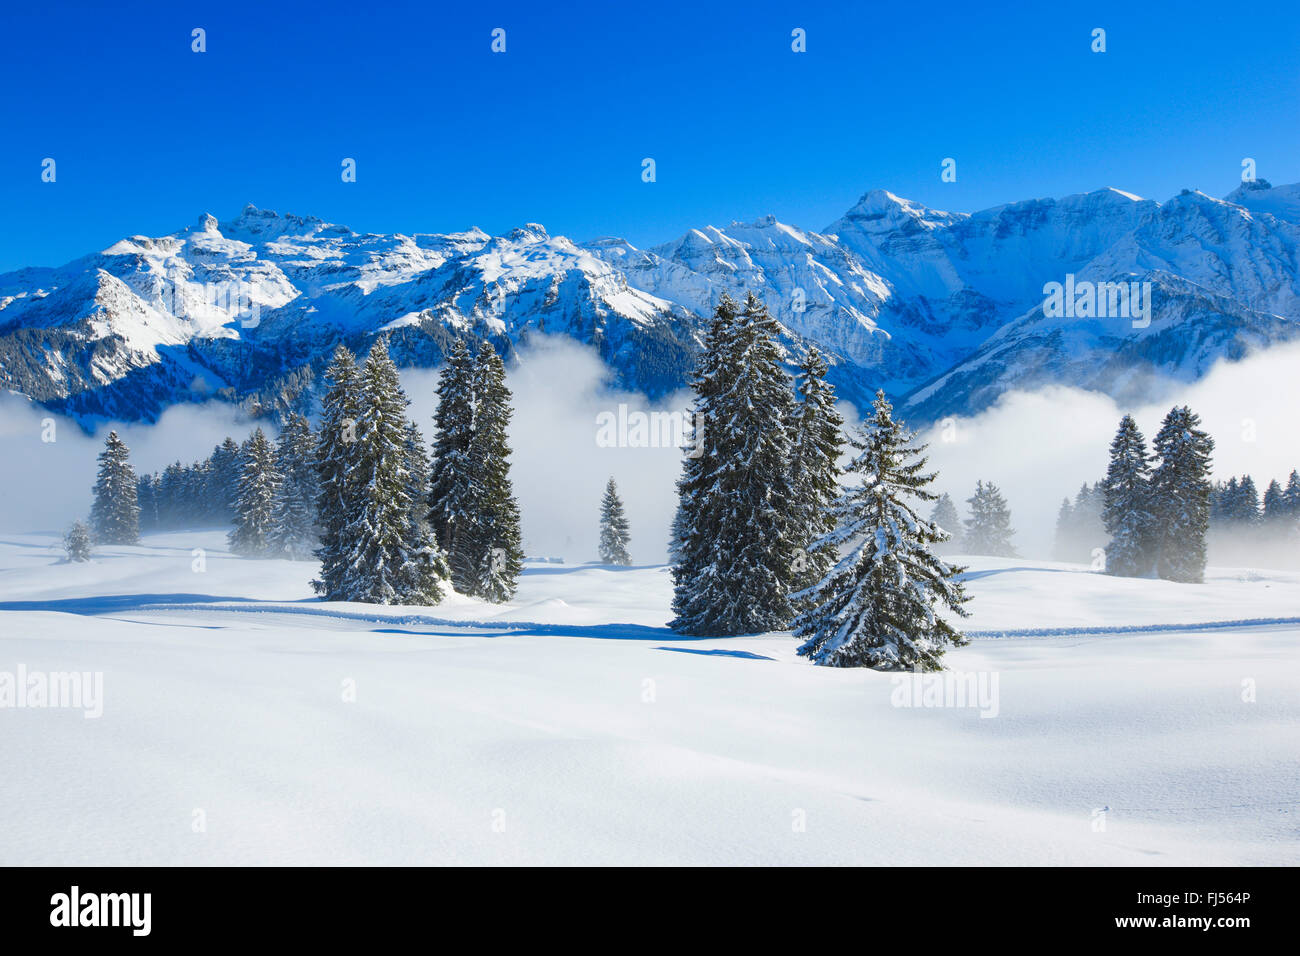 Freiberge Kaerpf at the Wallis Alps, Switzerland - Stock Image